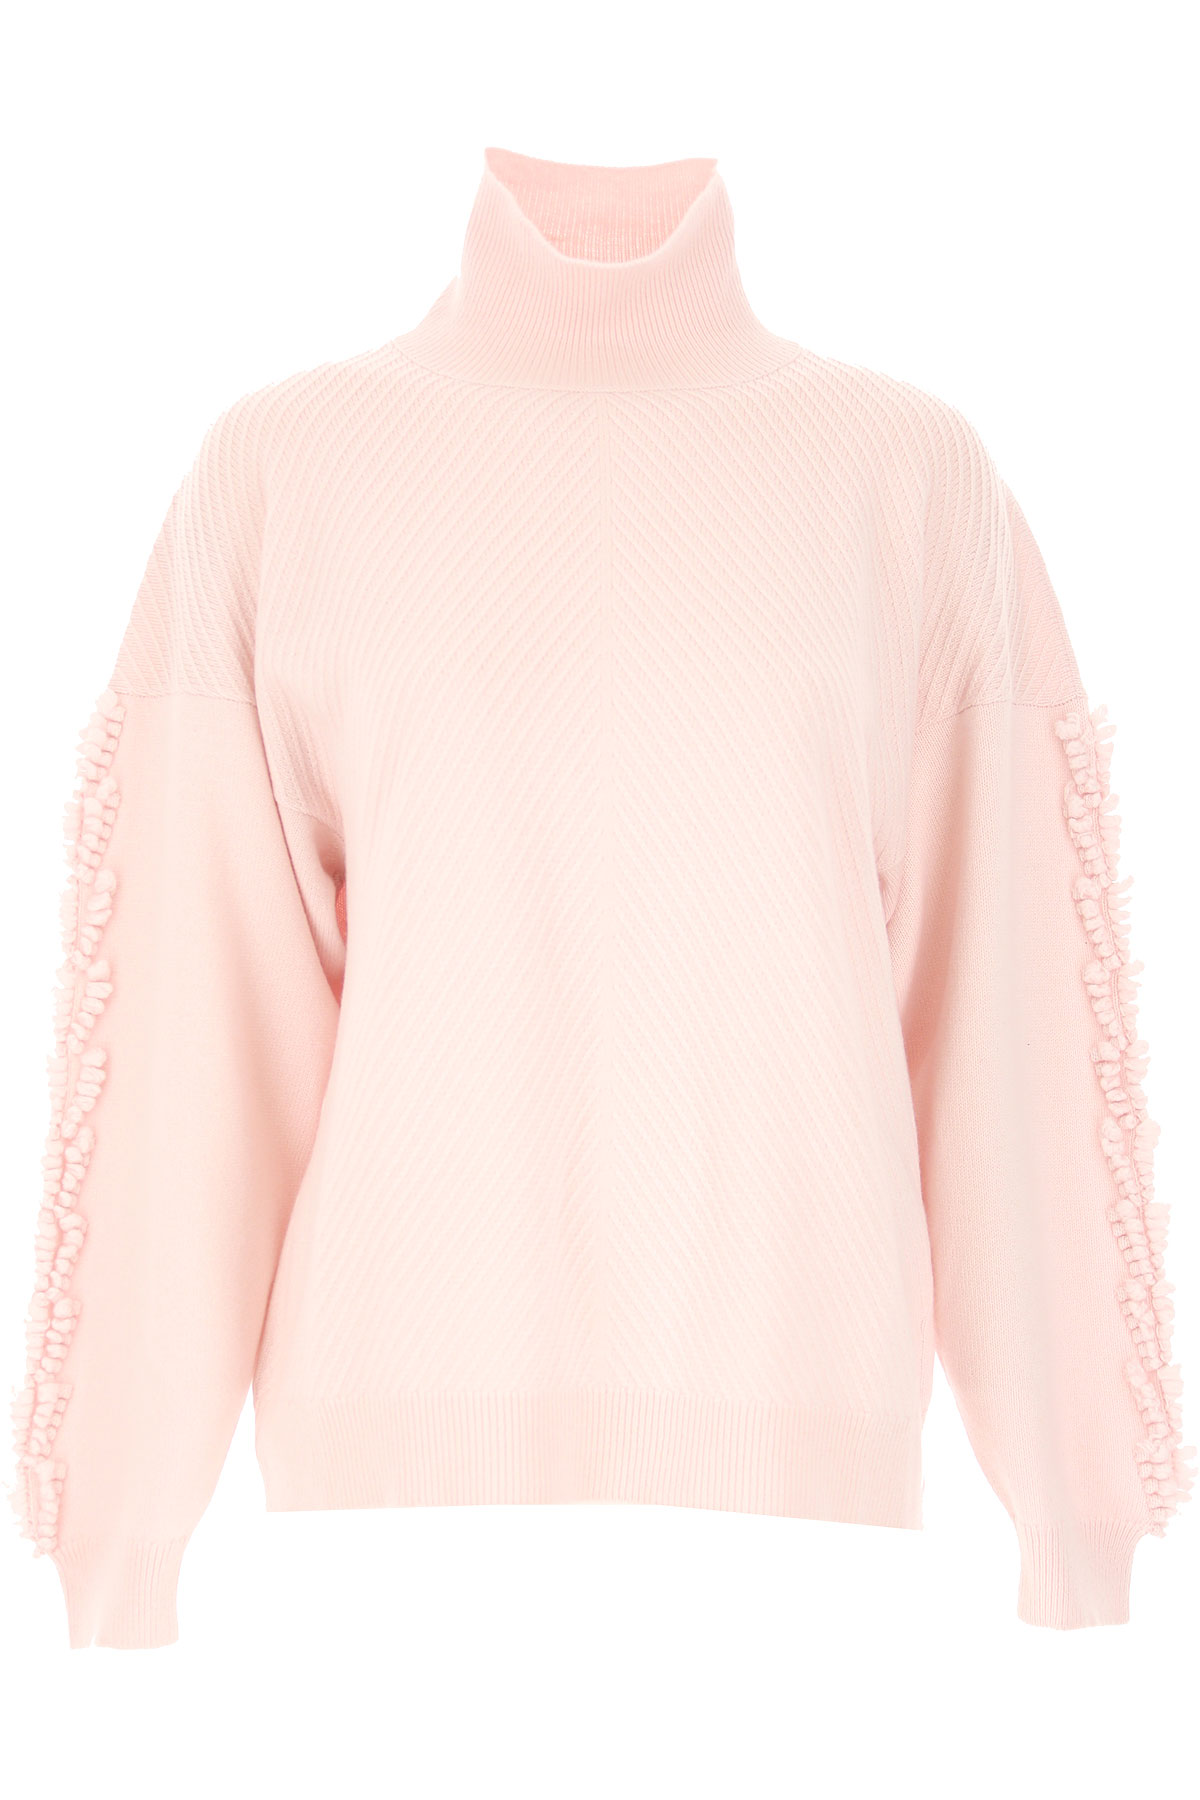 Barrie Sweater for Women Jumper On Sale, Pale Rose, Cashemere, 2019, 4 6